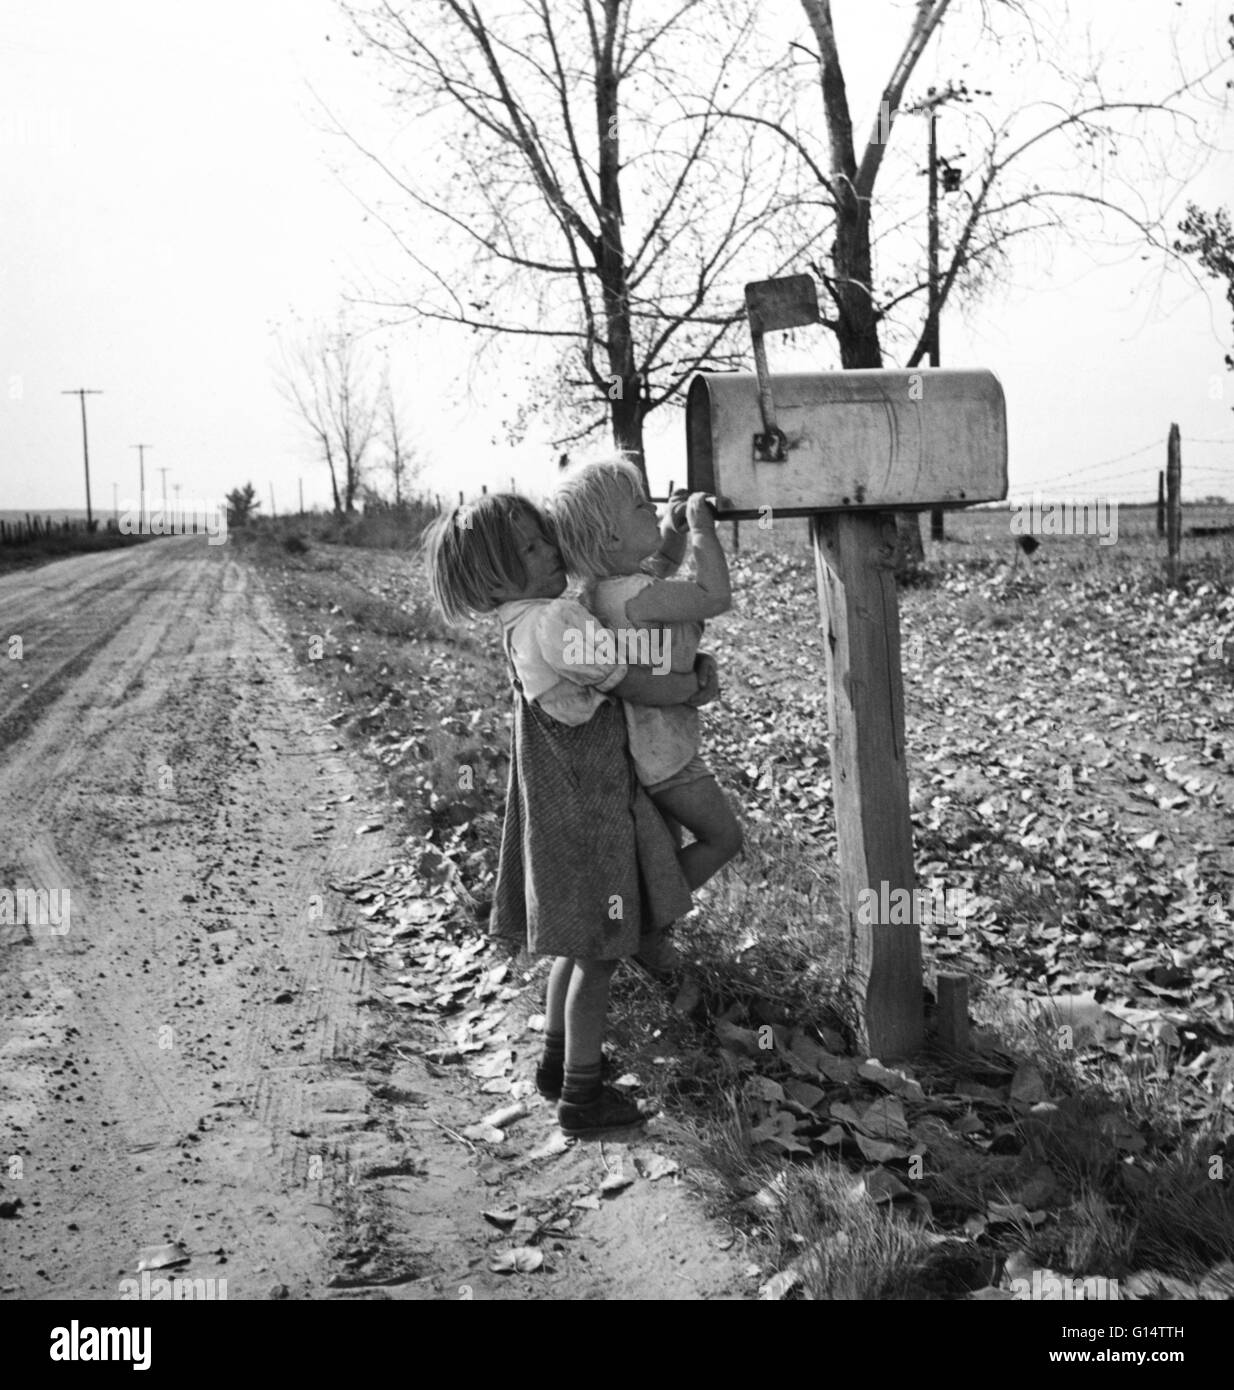 Two sisters check the mail in rural America during the Depression Era. - Stock Image